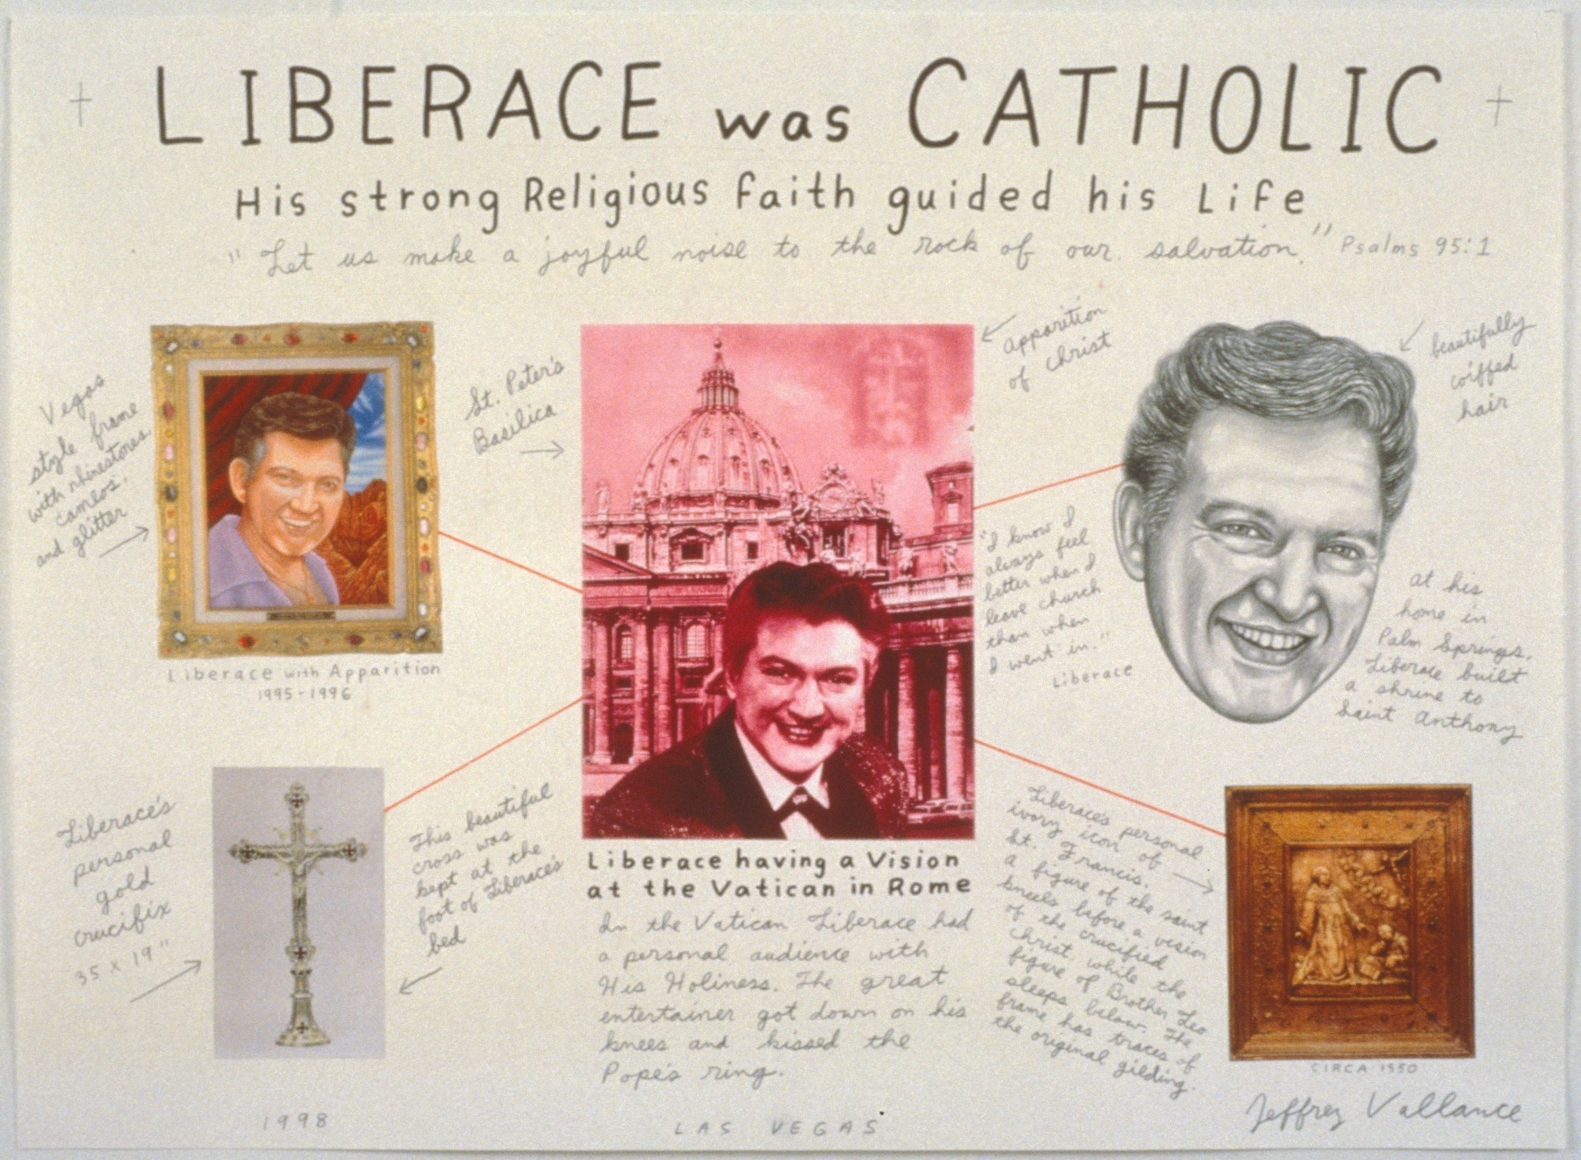 JEFFREY VALLANCE, Liberace was Catholic His Strong Religious Faith Guided His Life, 1998